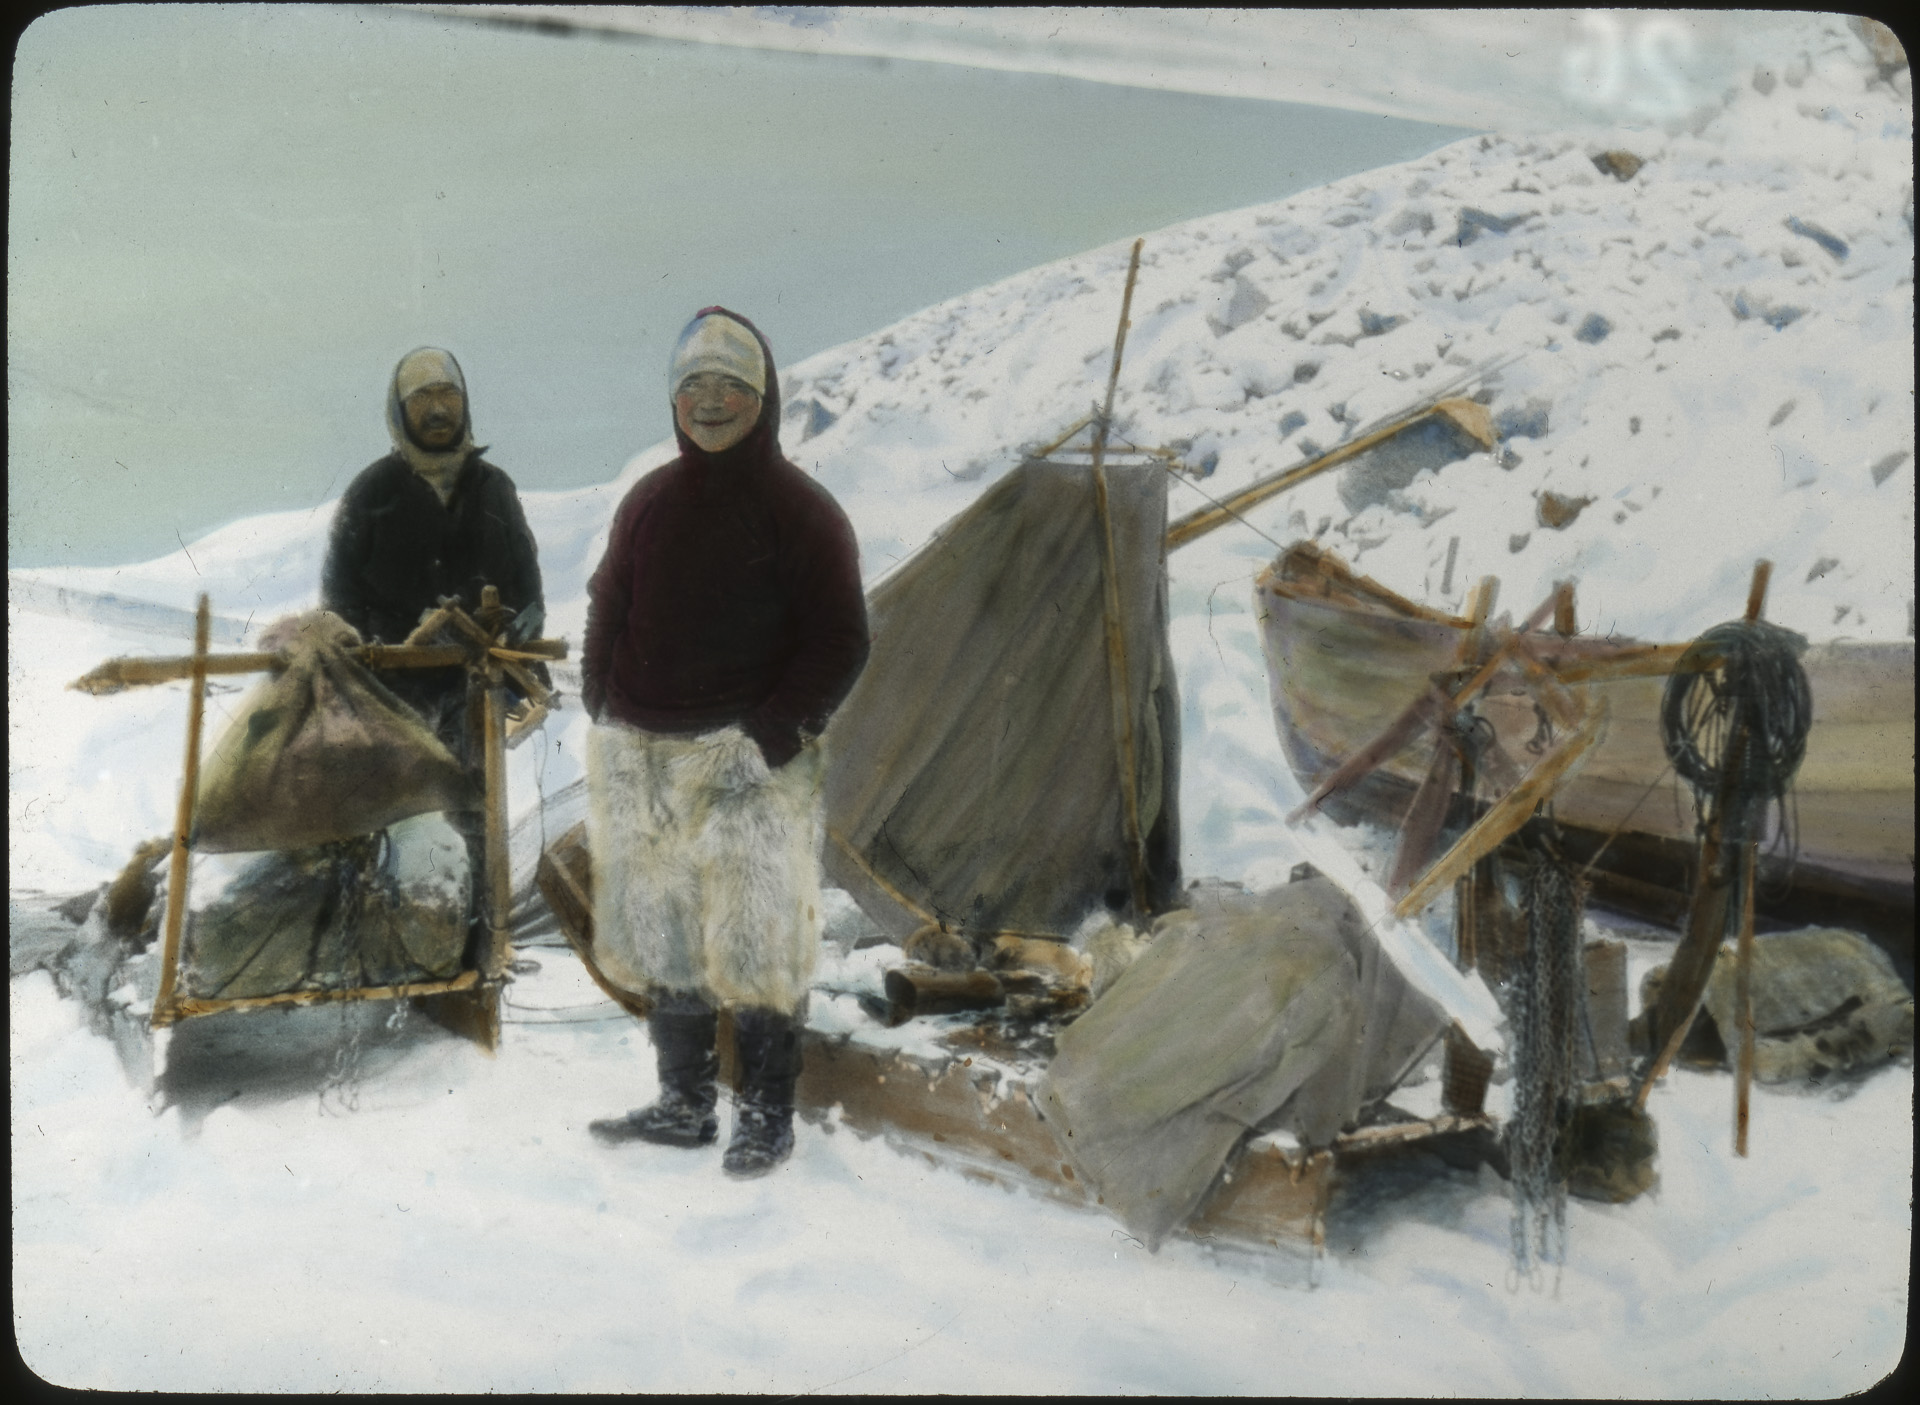 David and Martin with dog sledges